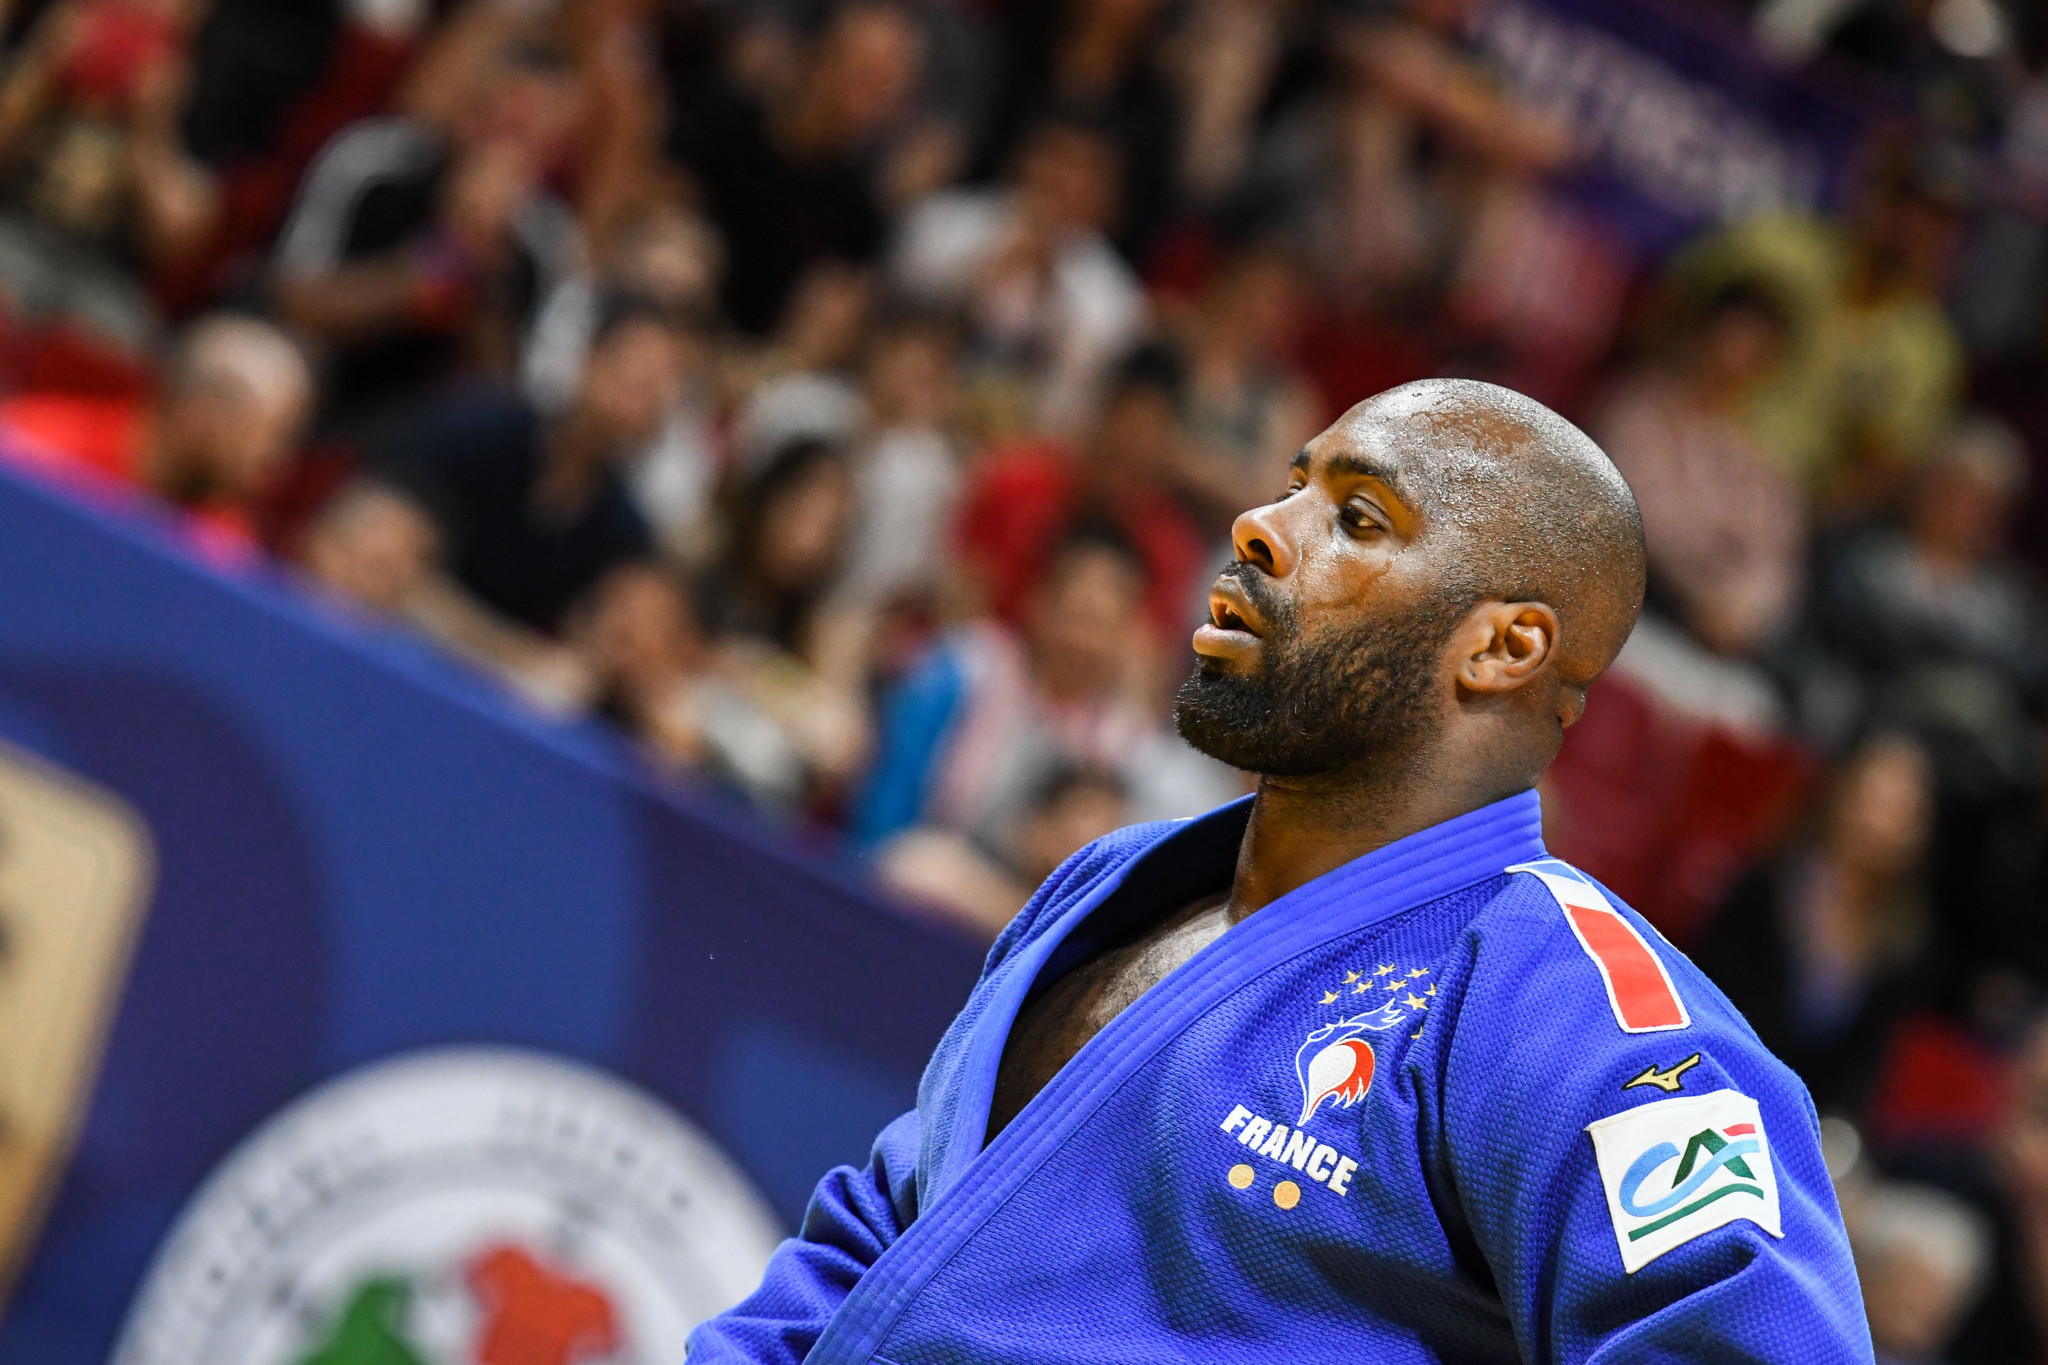 Teddy Riner was targeted by the racist graffiti in Paris ©Getty Images